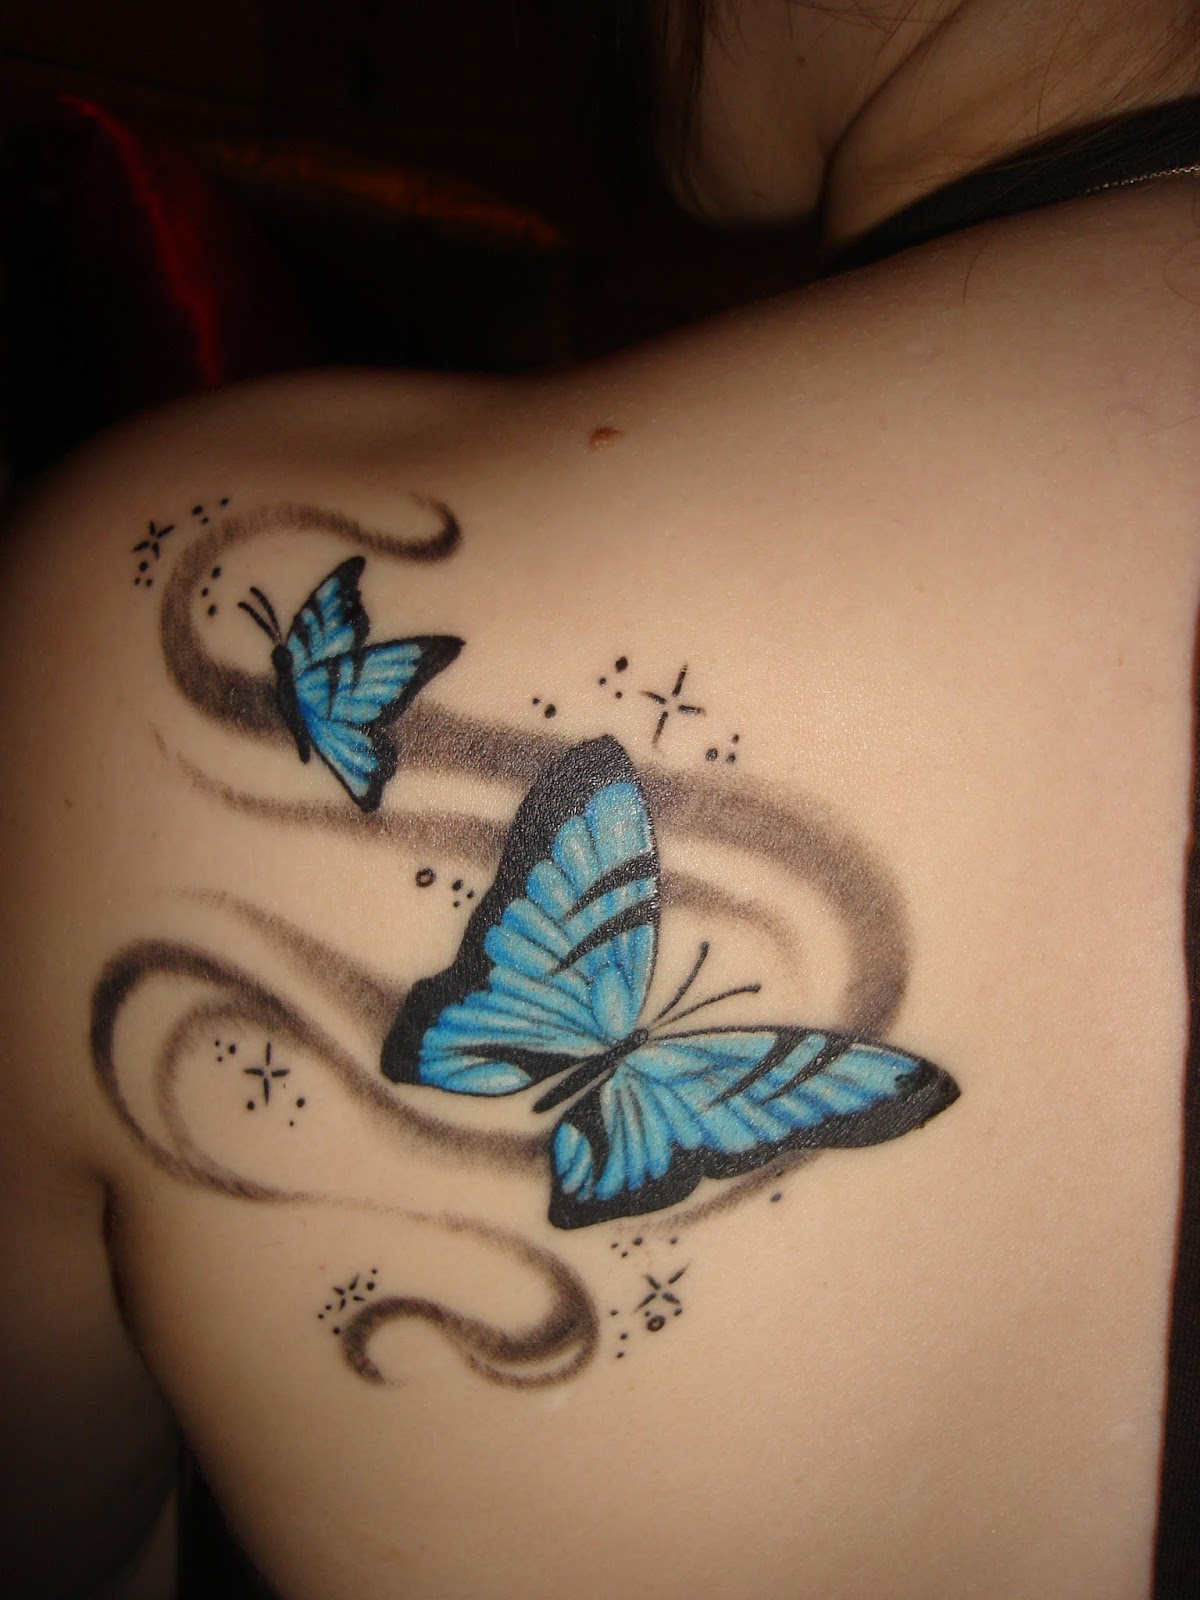 Butterfly Chest Tattoos For Women of butterfly tattoos in